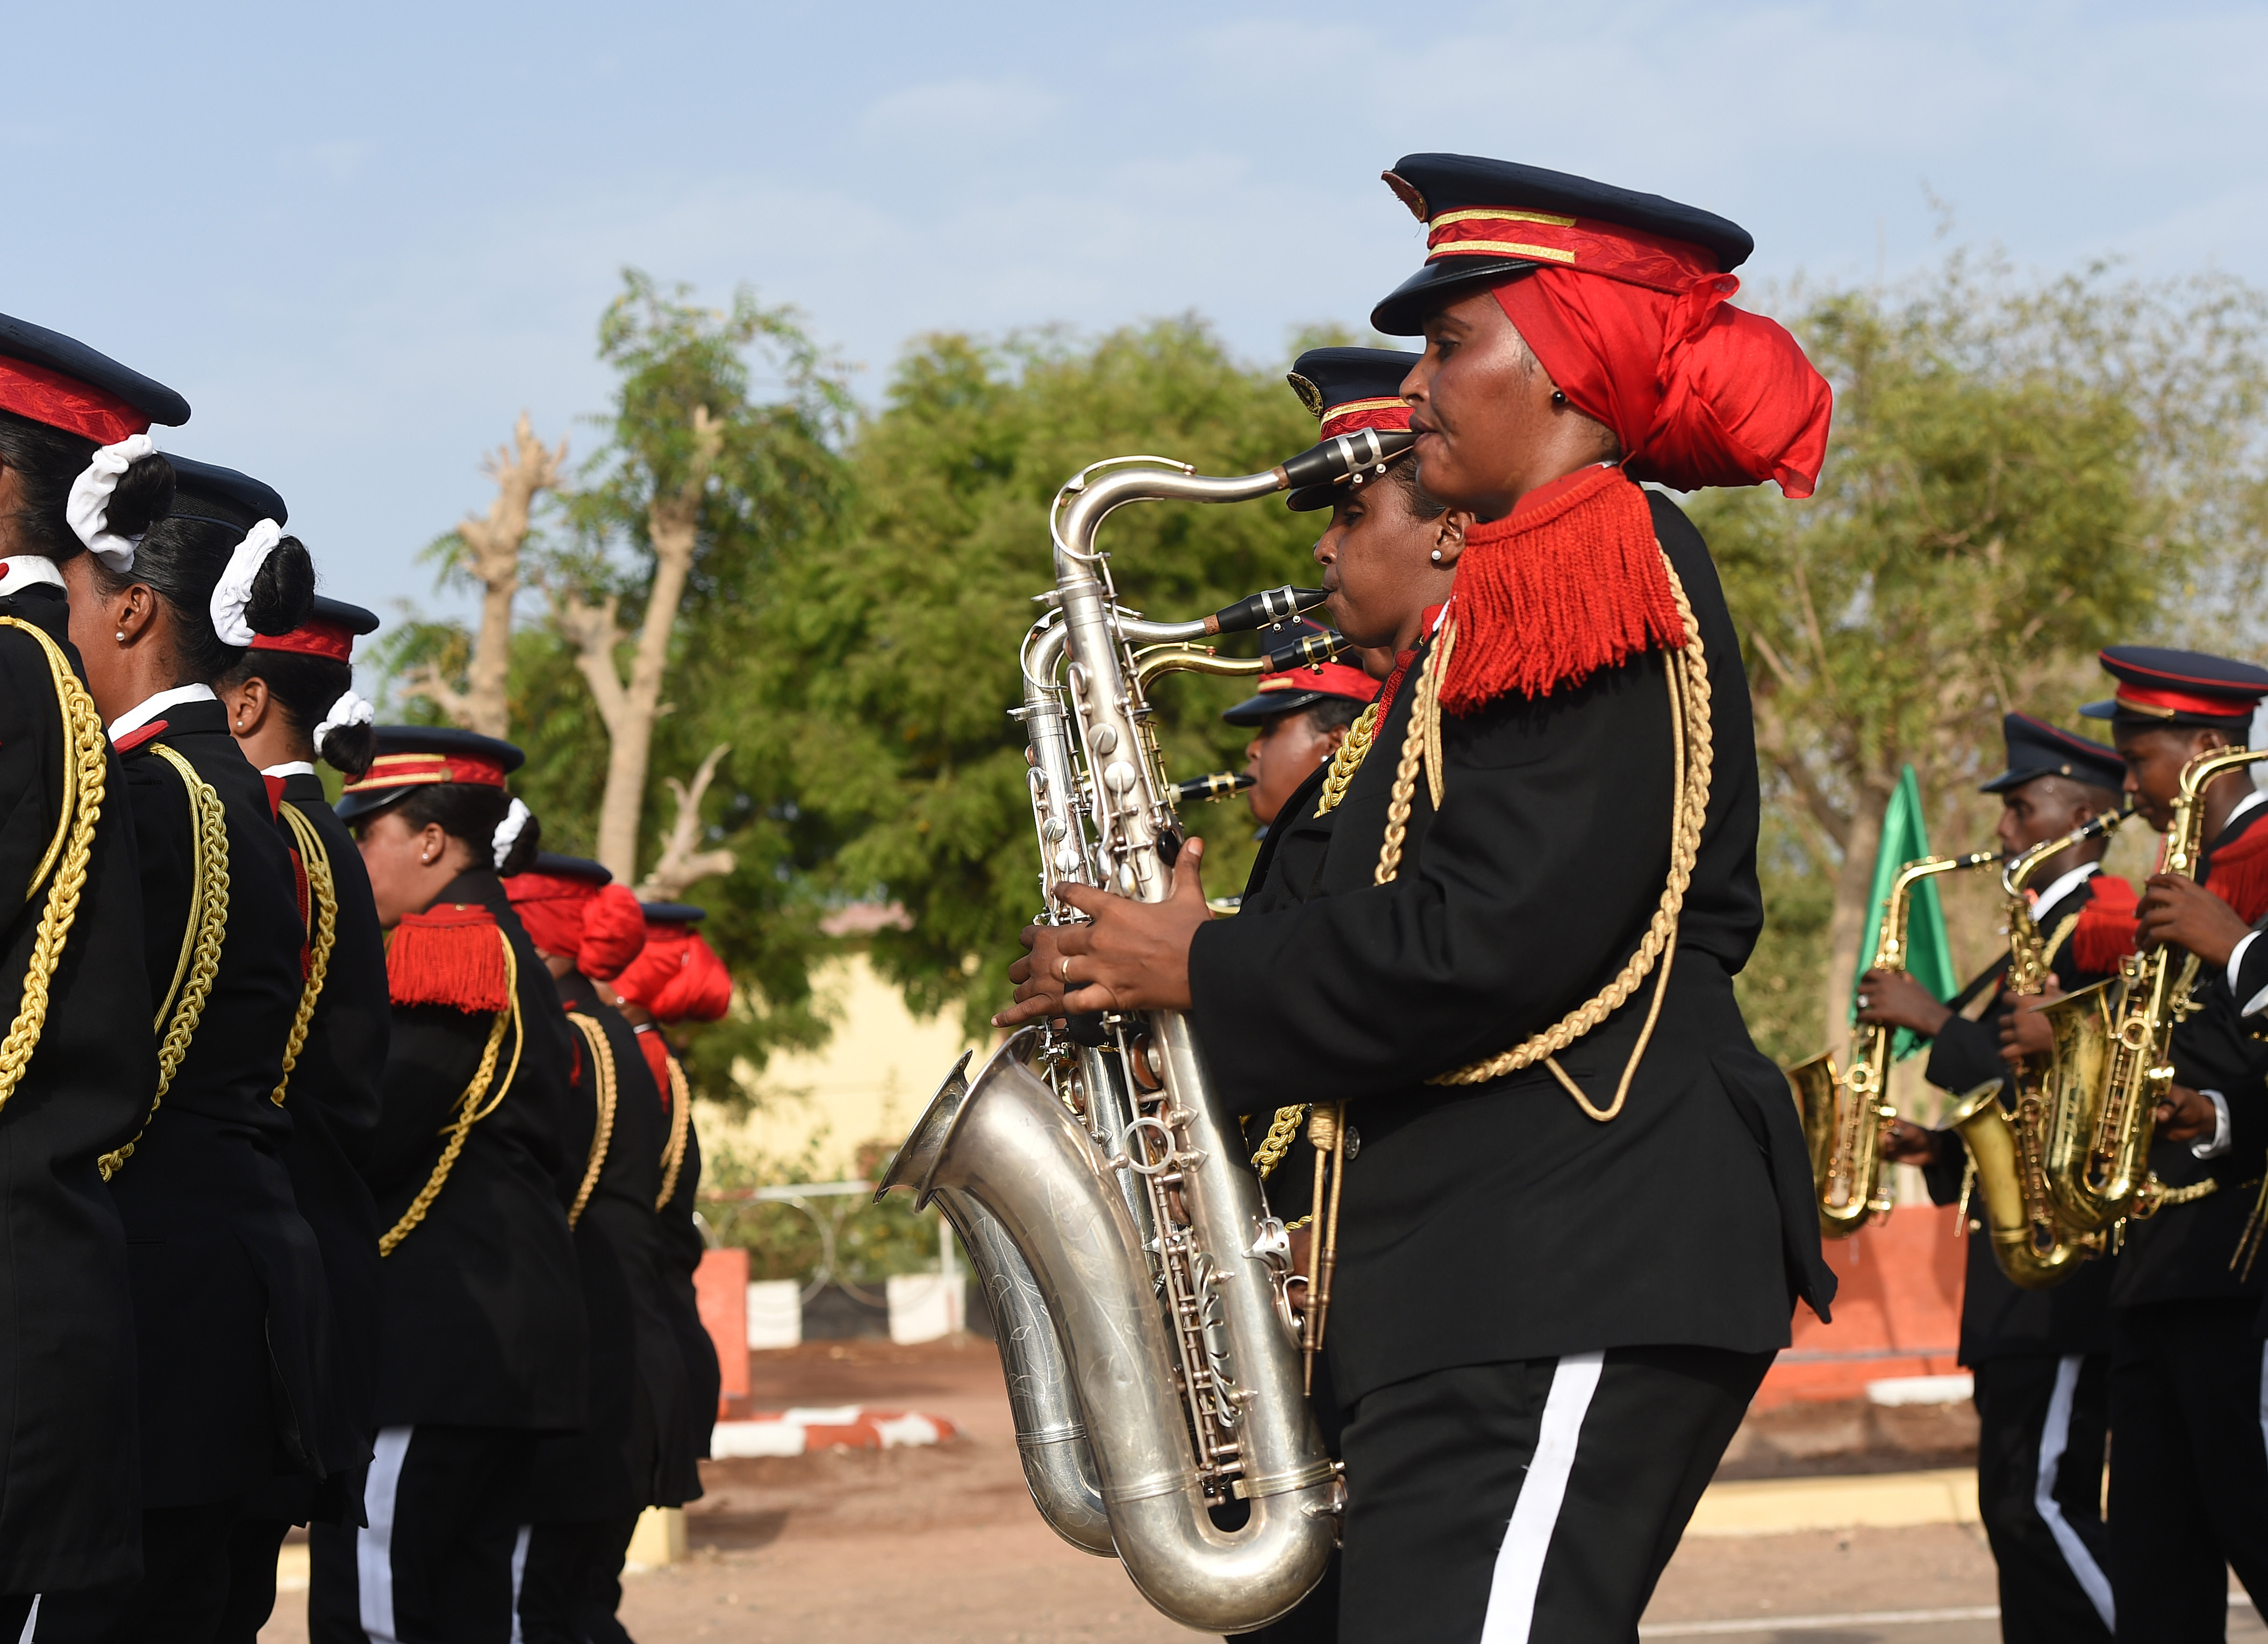 The Djiboutian Armed Forces (FAD) Marching Band performs during the Djiboutian Armed Forces' (FAD) 38th anniversary celebration June 6, 2015 at Camp Cheik Osman, Djibouti. The FAD was created June, 6, 1977, 21 days before becoming an independent country.  (U.S. Air Force photo by Senior Airman Nesha Humes)